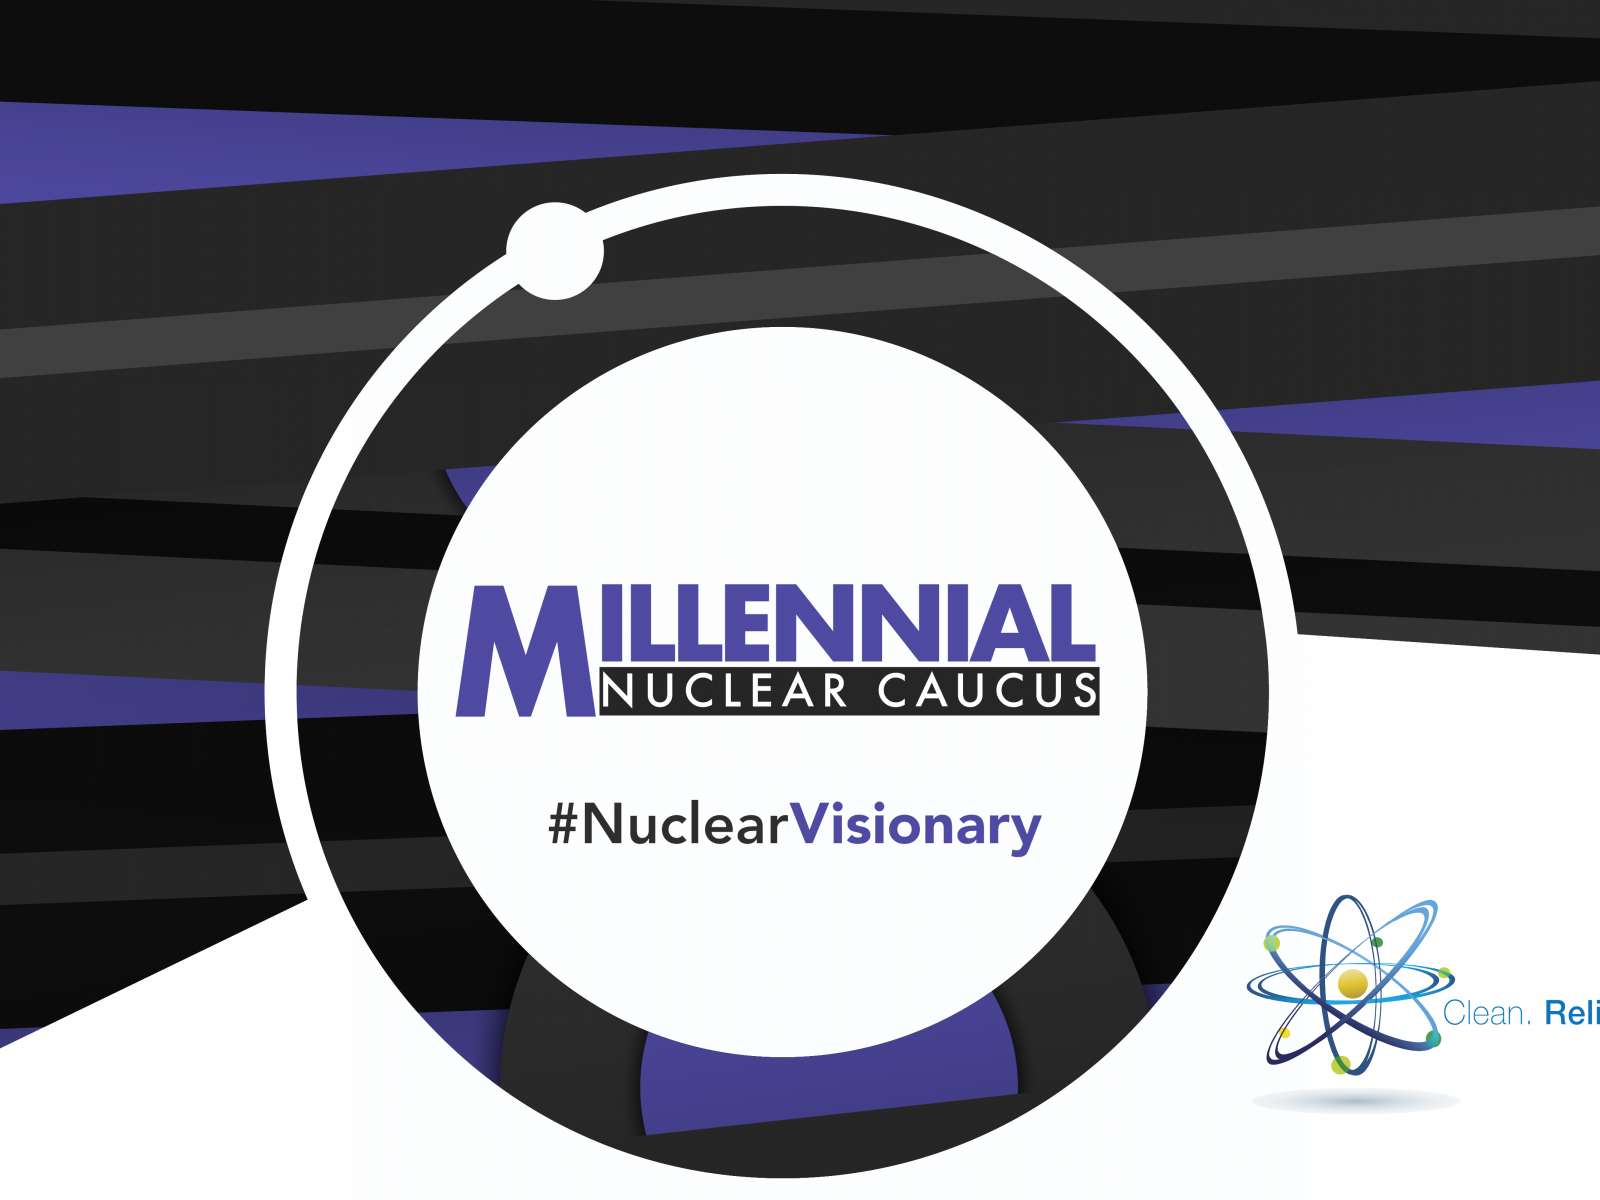 Logo for the Millennial Nuclear Caucus